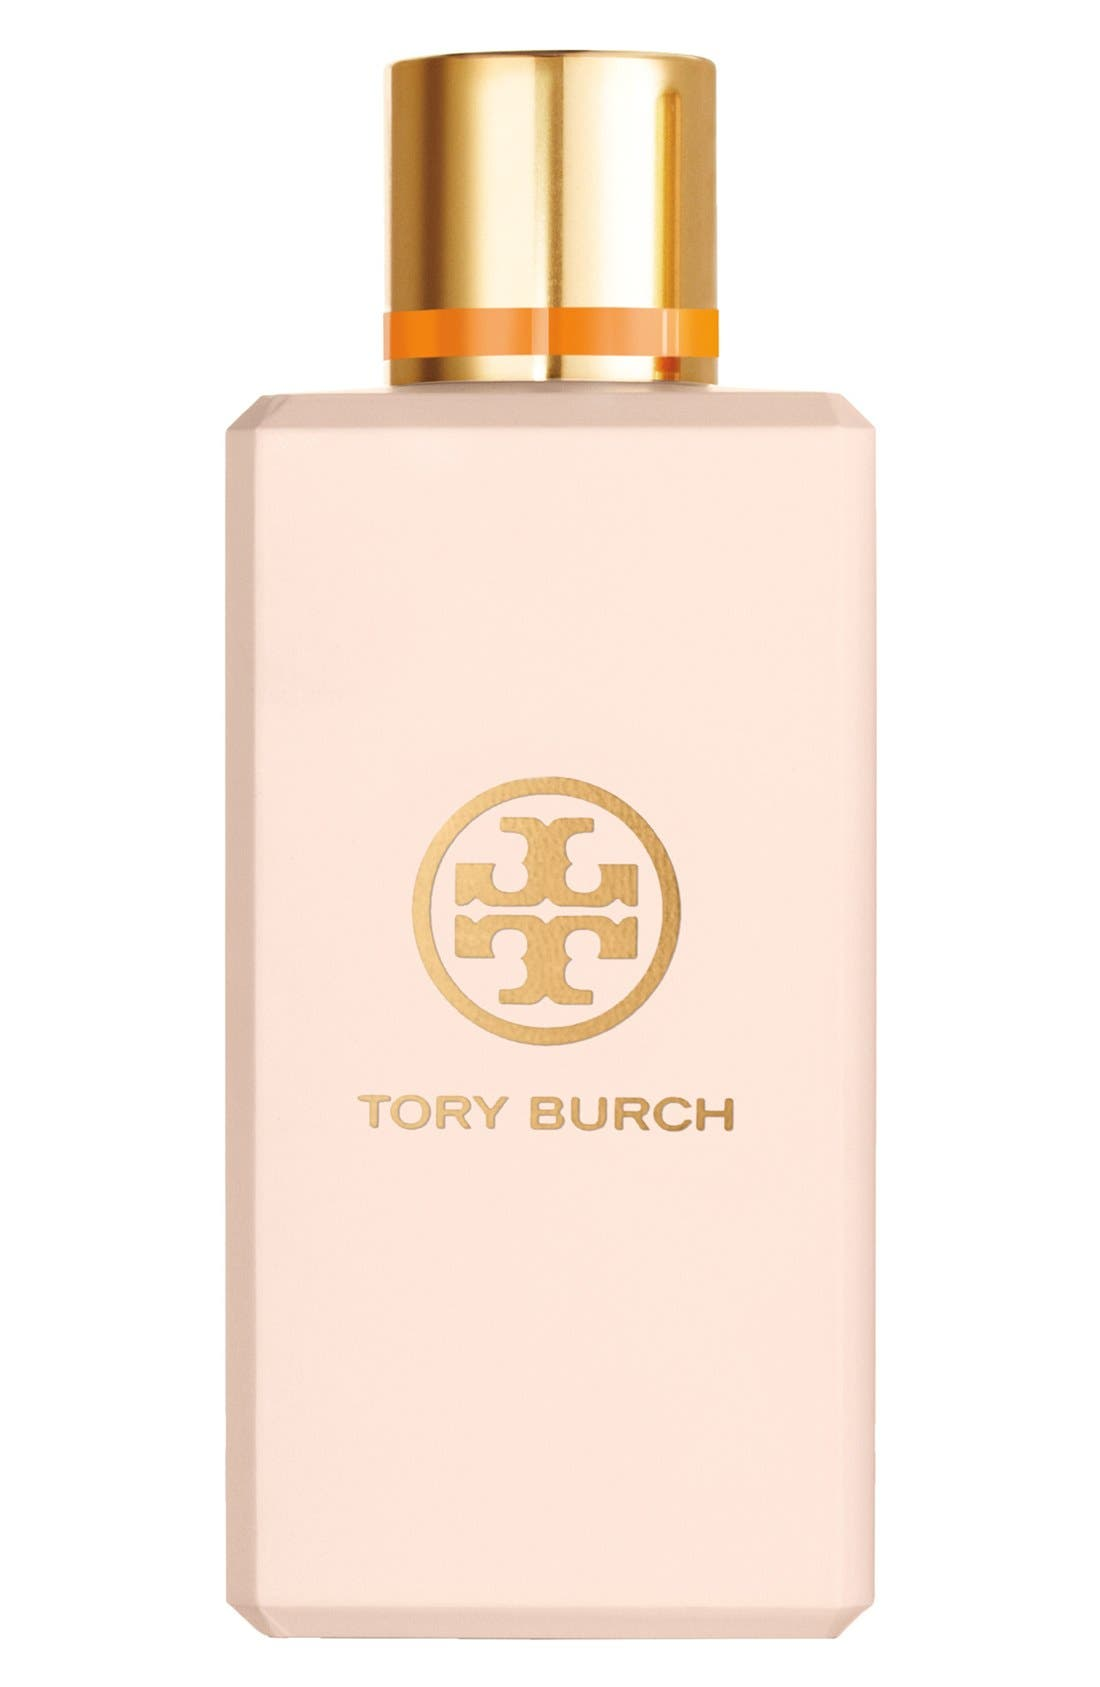 Tory Burch Bath & Shower Gel